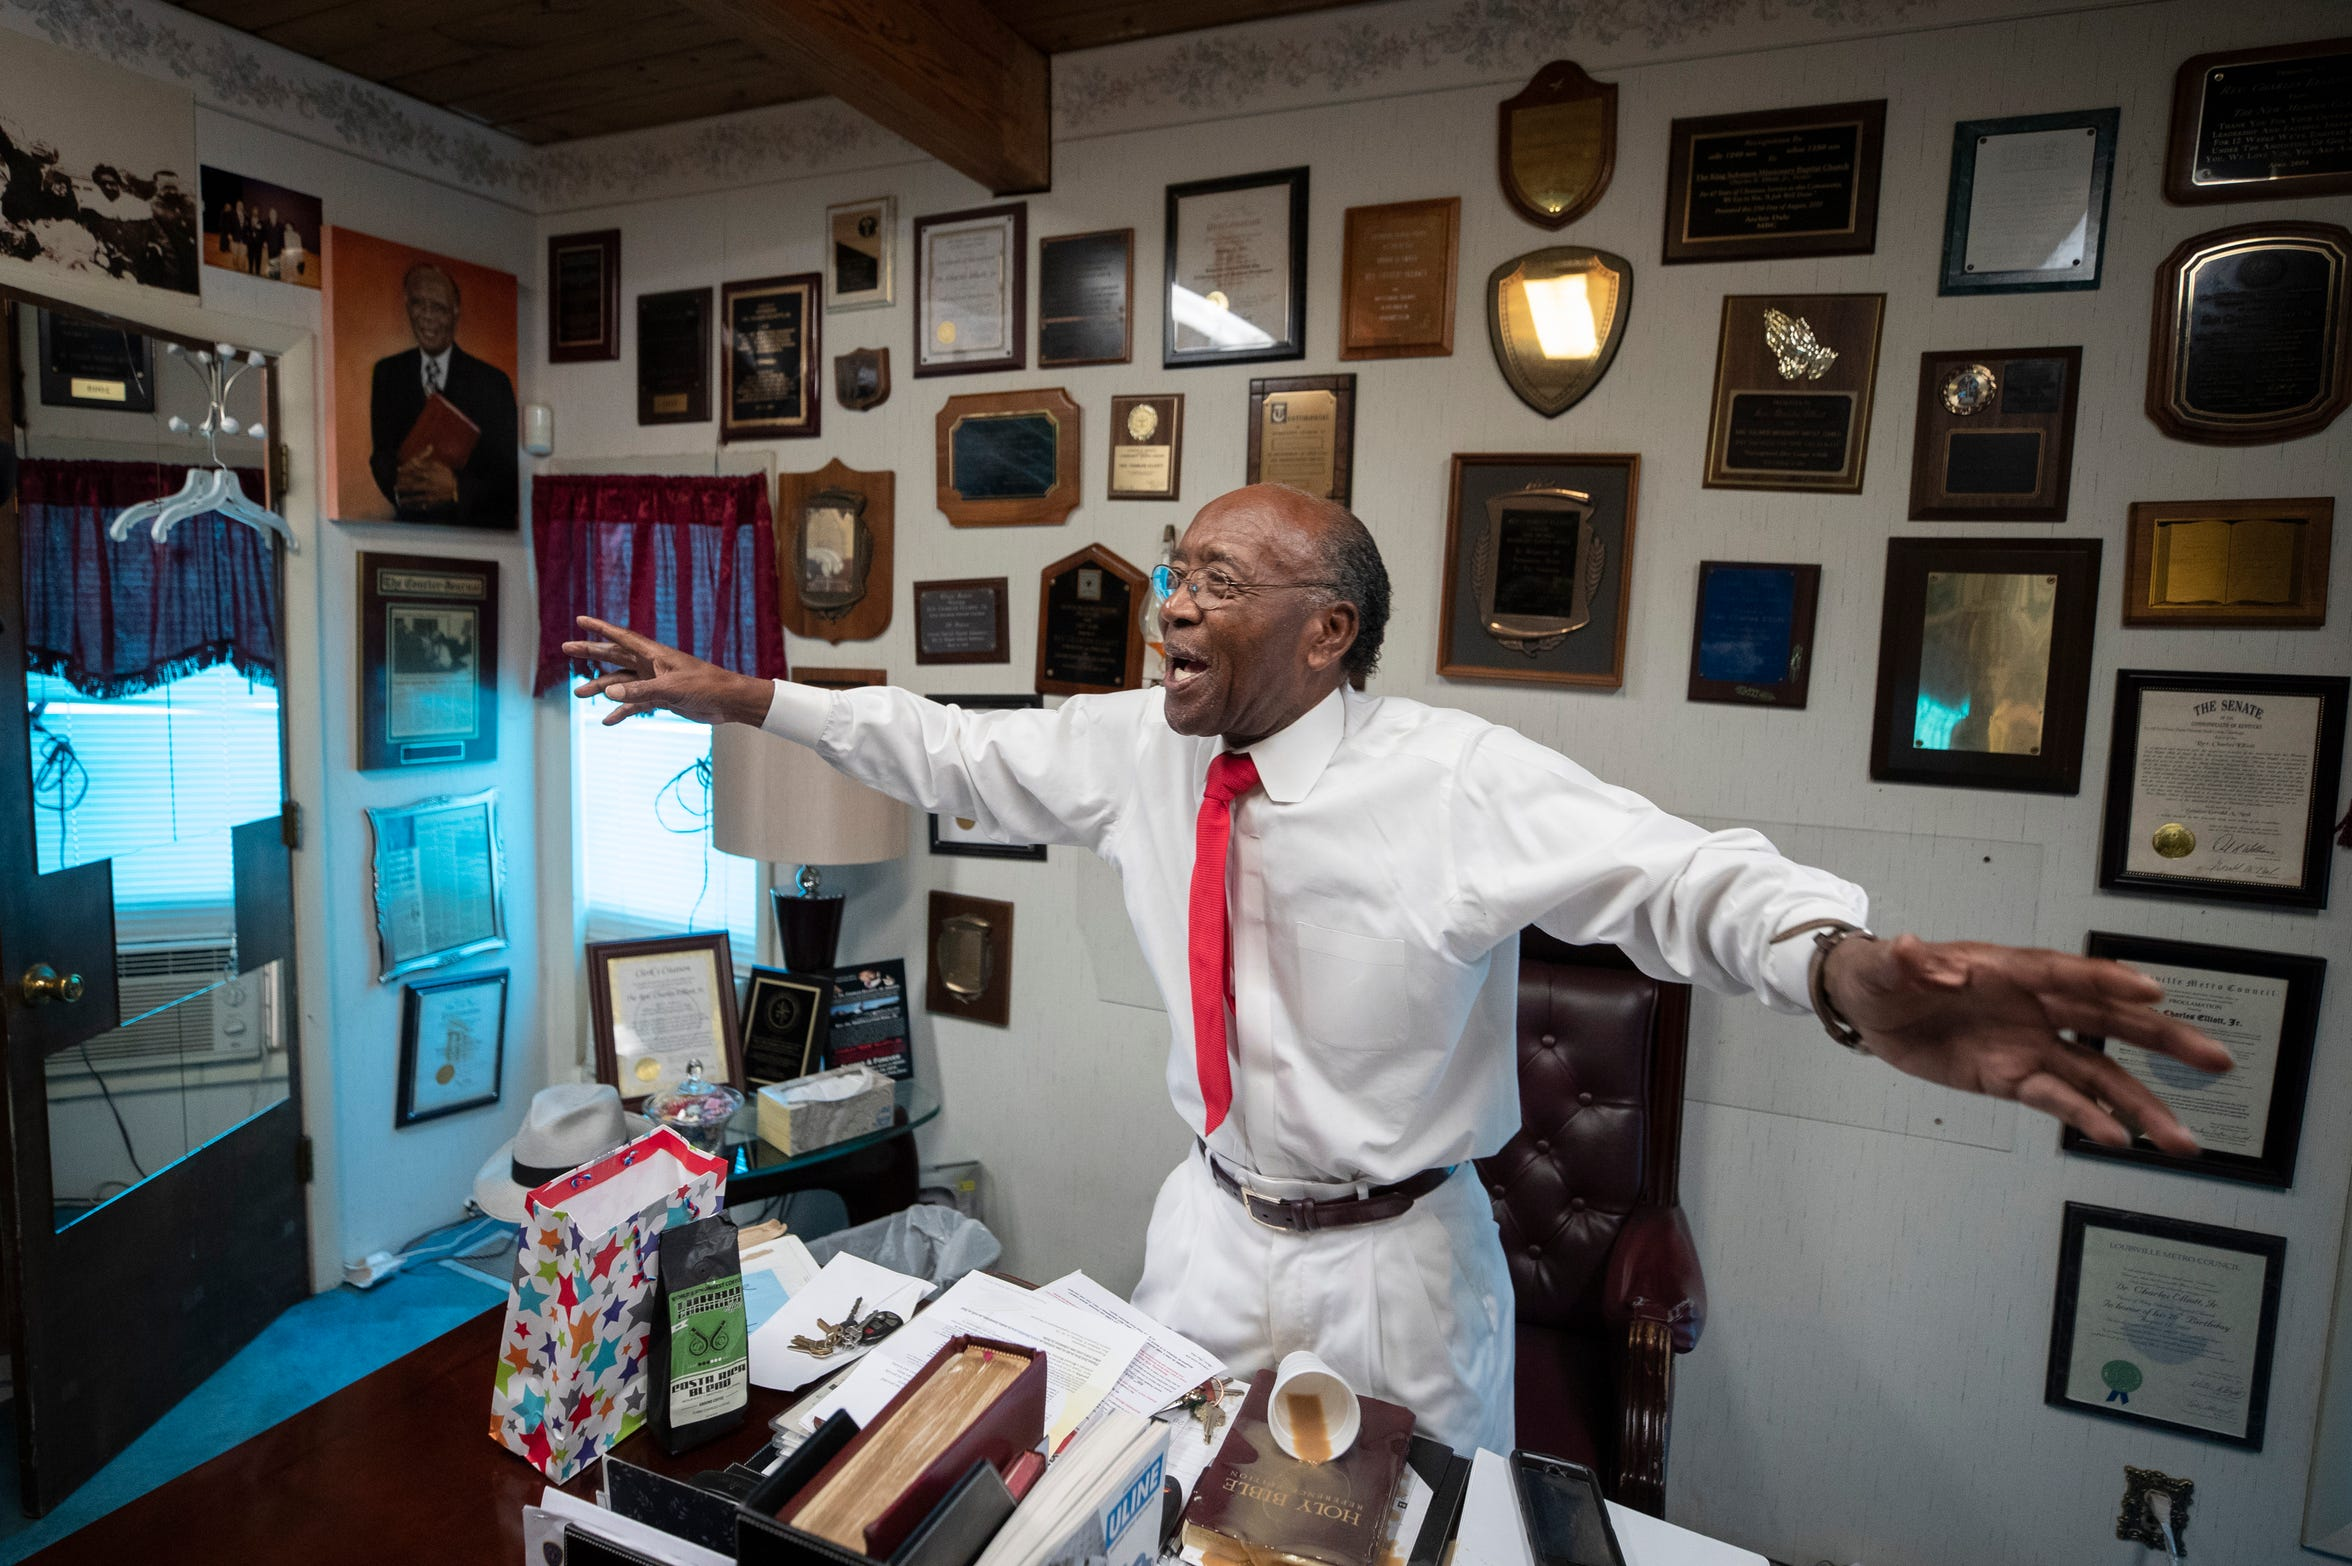 The Rev. Charles Elliott Jr. gestures as he tells a story in his office at King Solomon Missionary Baptist Church, knocking over his cup of coffee. Aug. 25, 2019.